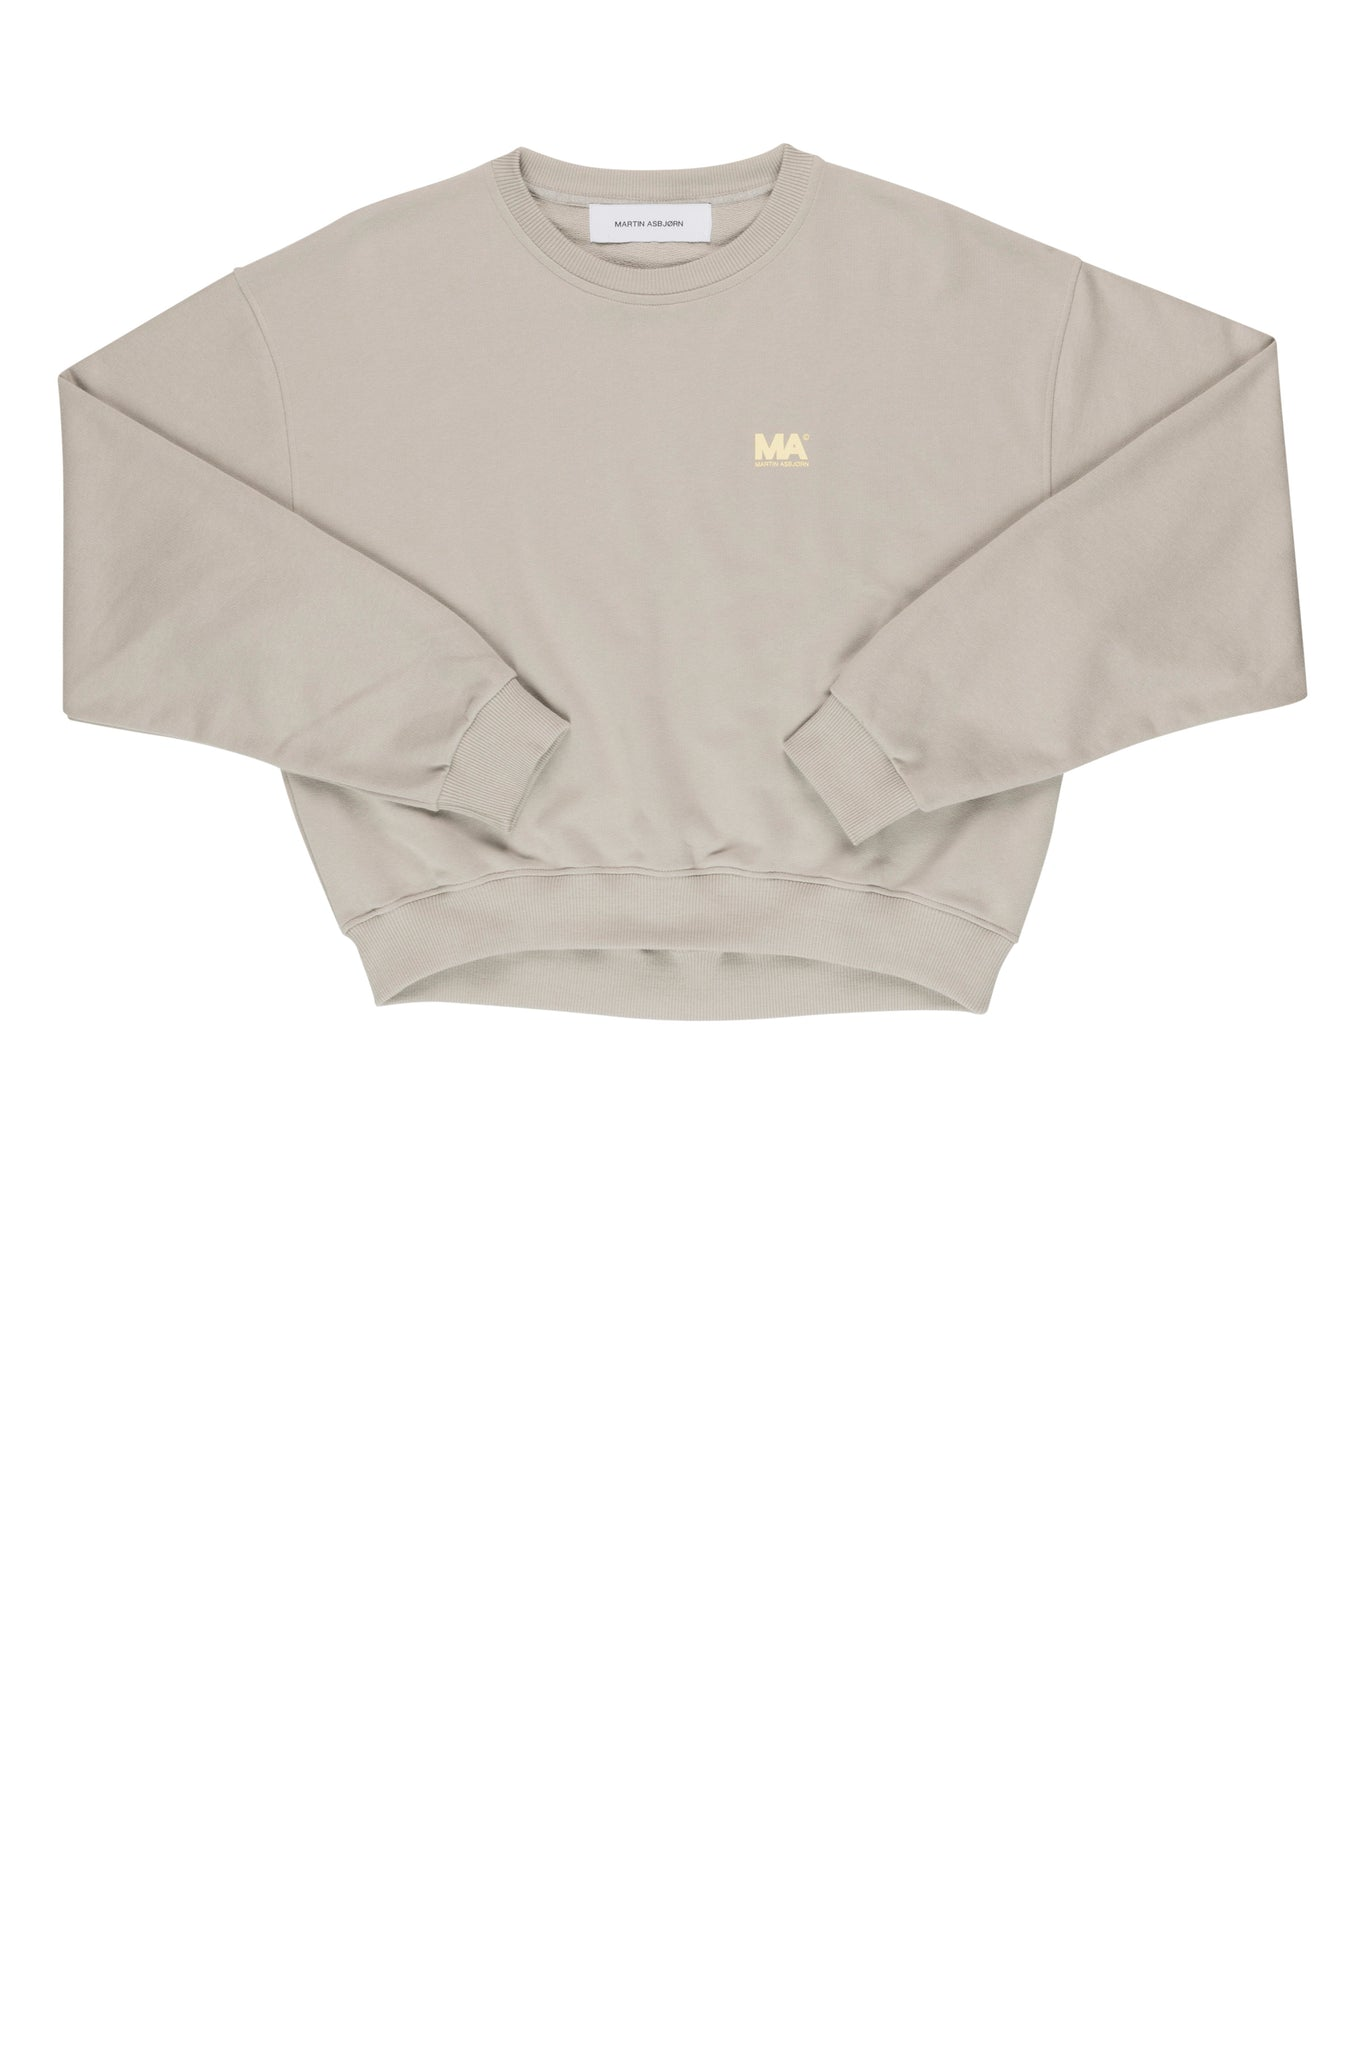 martin Asbjørn cropped stone sweatshirt for men and women